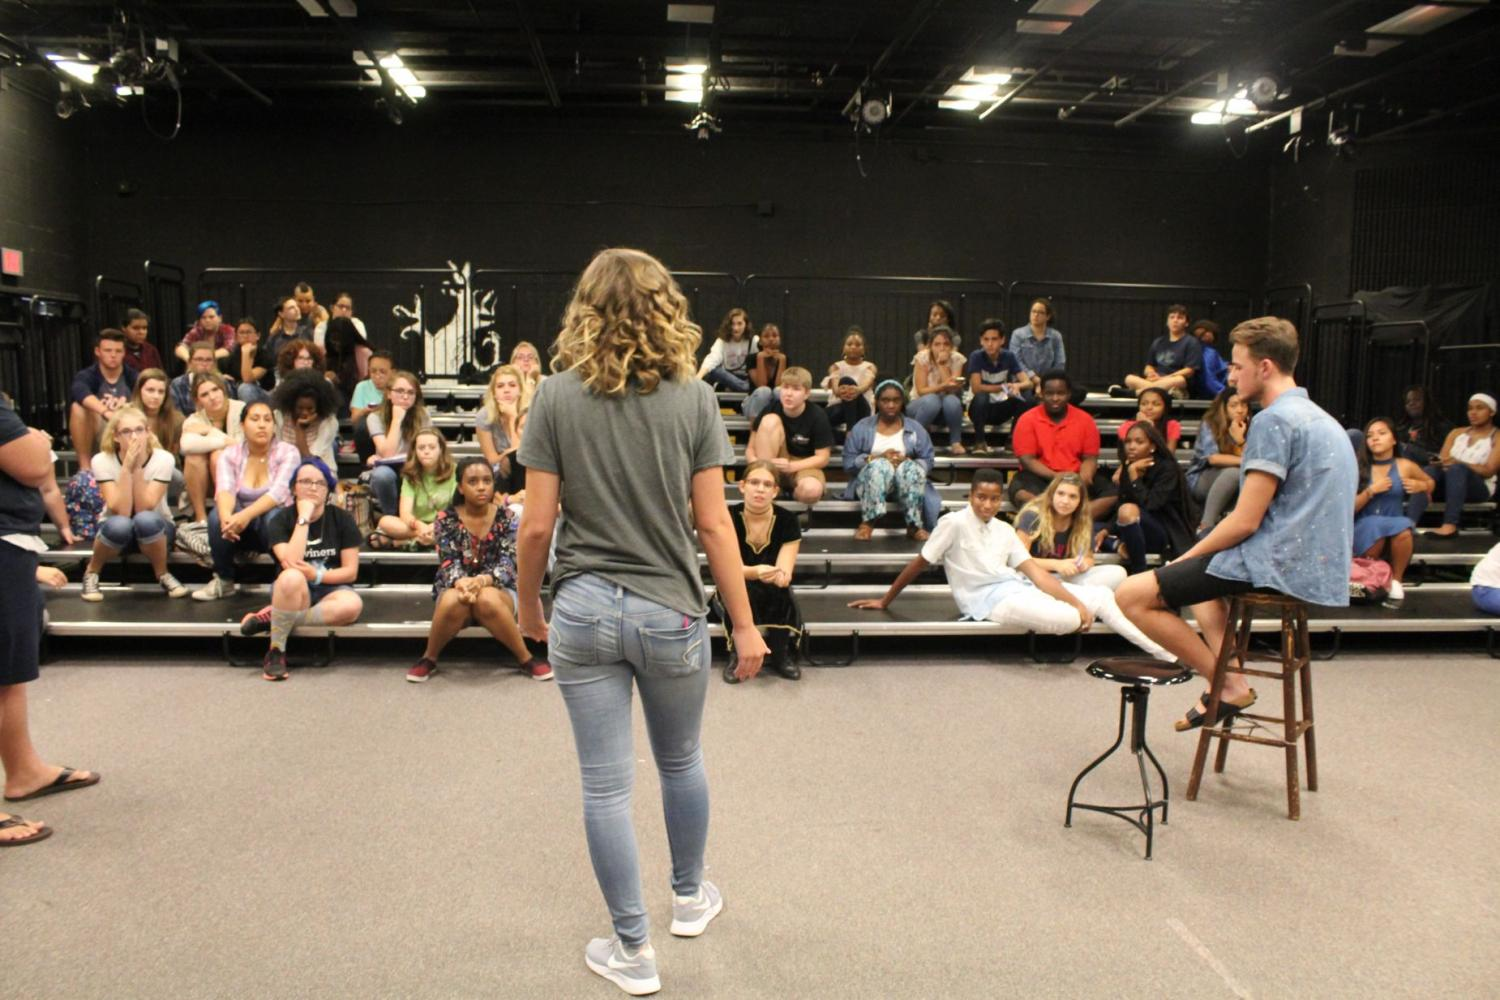 Drama+Club+begins+its+meeting+with+volunteers+performing+their+monologues+for+helpful+feedback+from+other+peers.+Senior+and+Drama+Club+president+Jordan+Hicks+prepares+students+for+what+their+real+audition+will+be+like.+%E2%80%9CThe+enthusiasm+in+students+is+so+amazing+this+year%2C+I+can%E2%80%99t+wait+for+them+to+nail+their+auditions%2C%E2%80%9D+Hicks+said.+